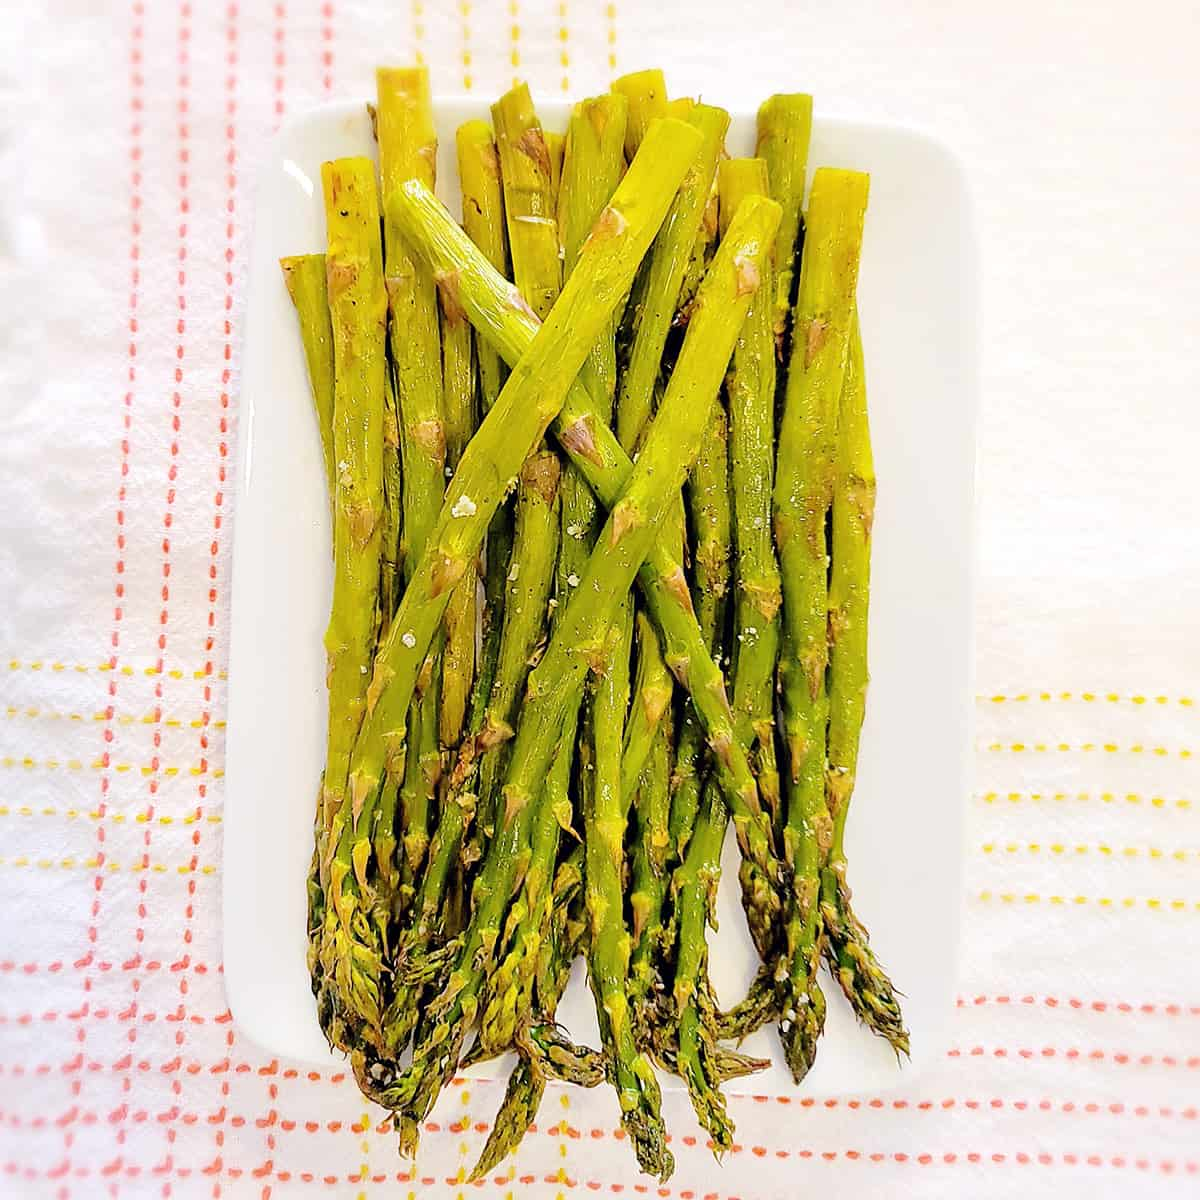 Oven roasted asparagus on a white serving dish.